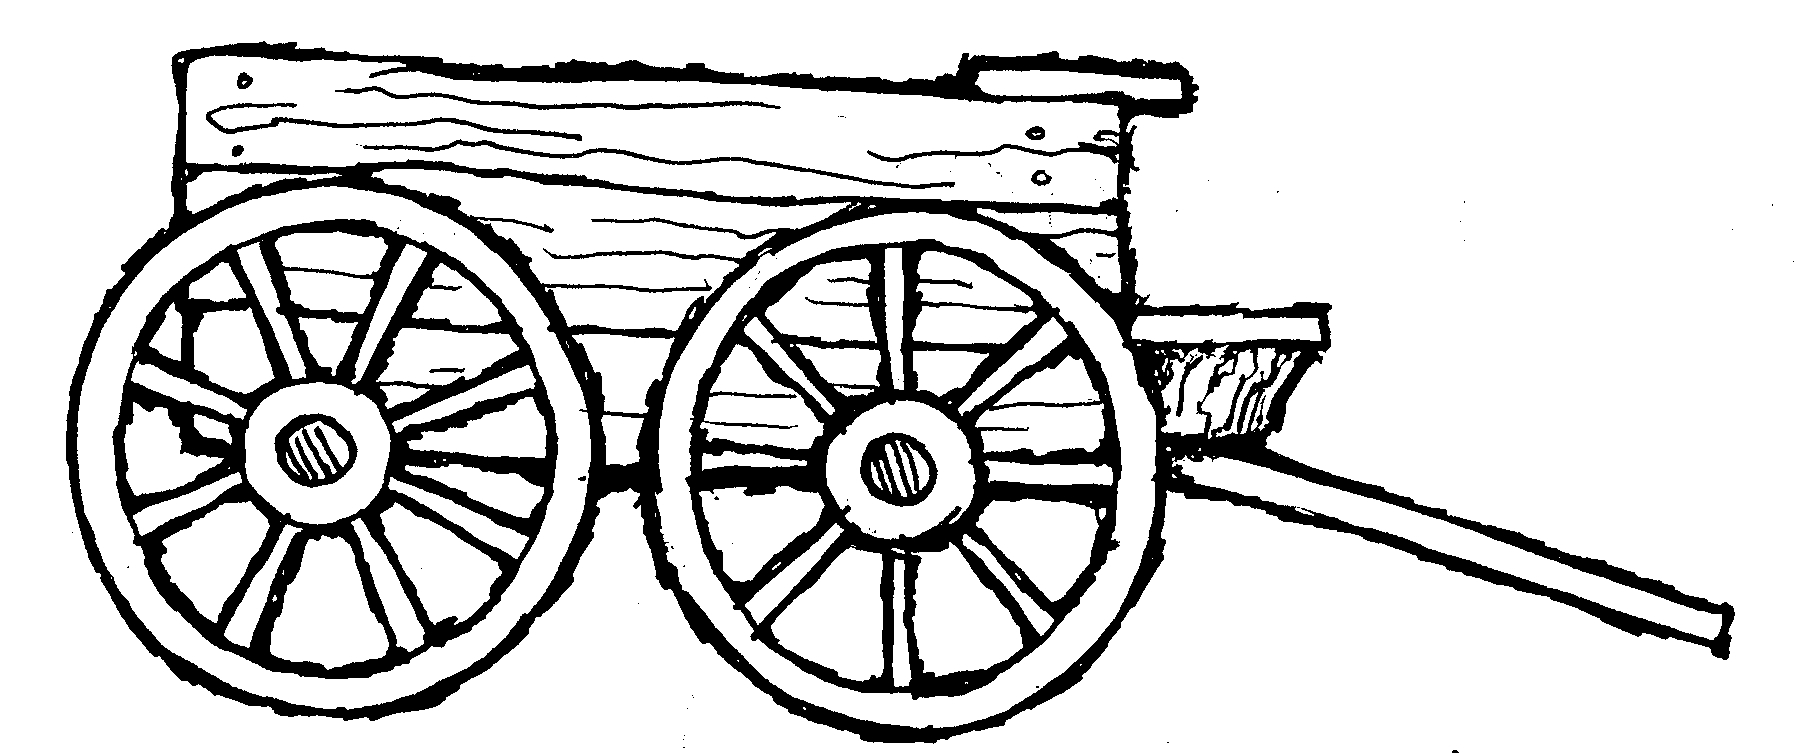 Wagon clipart #8, Download drawings